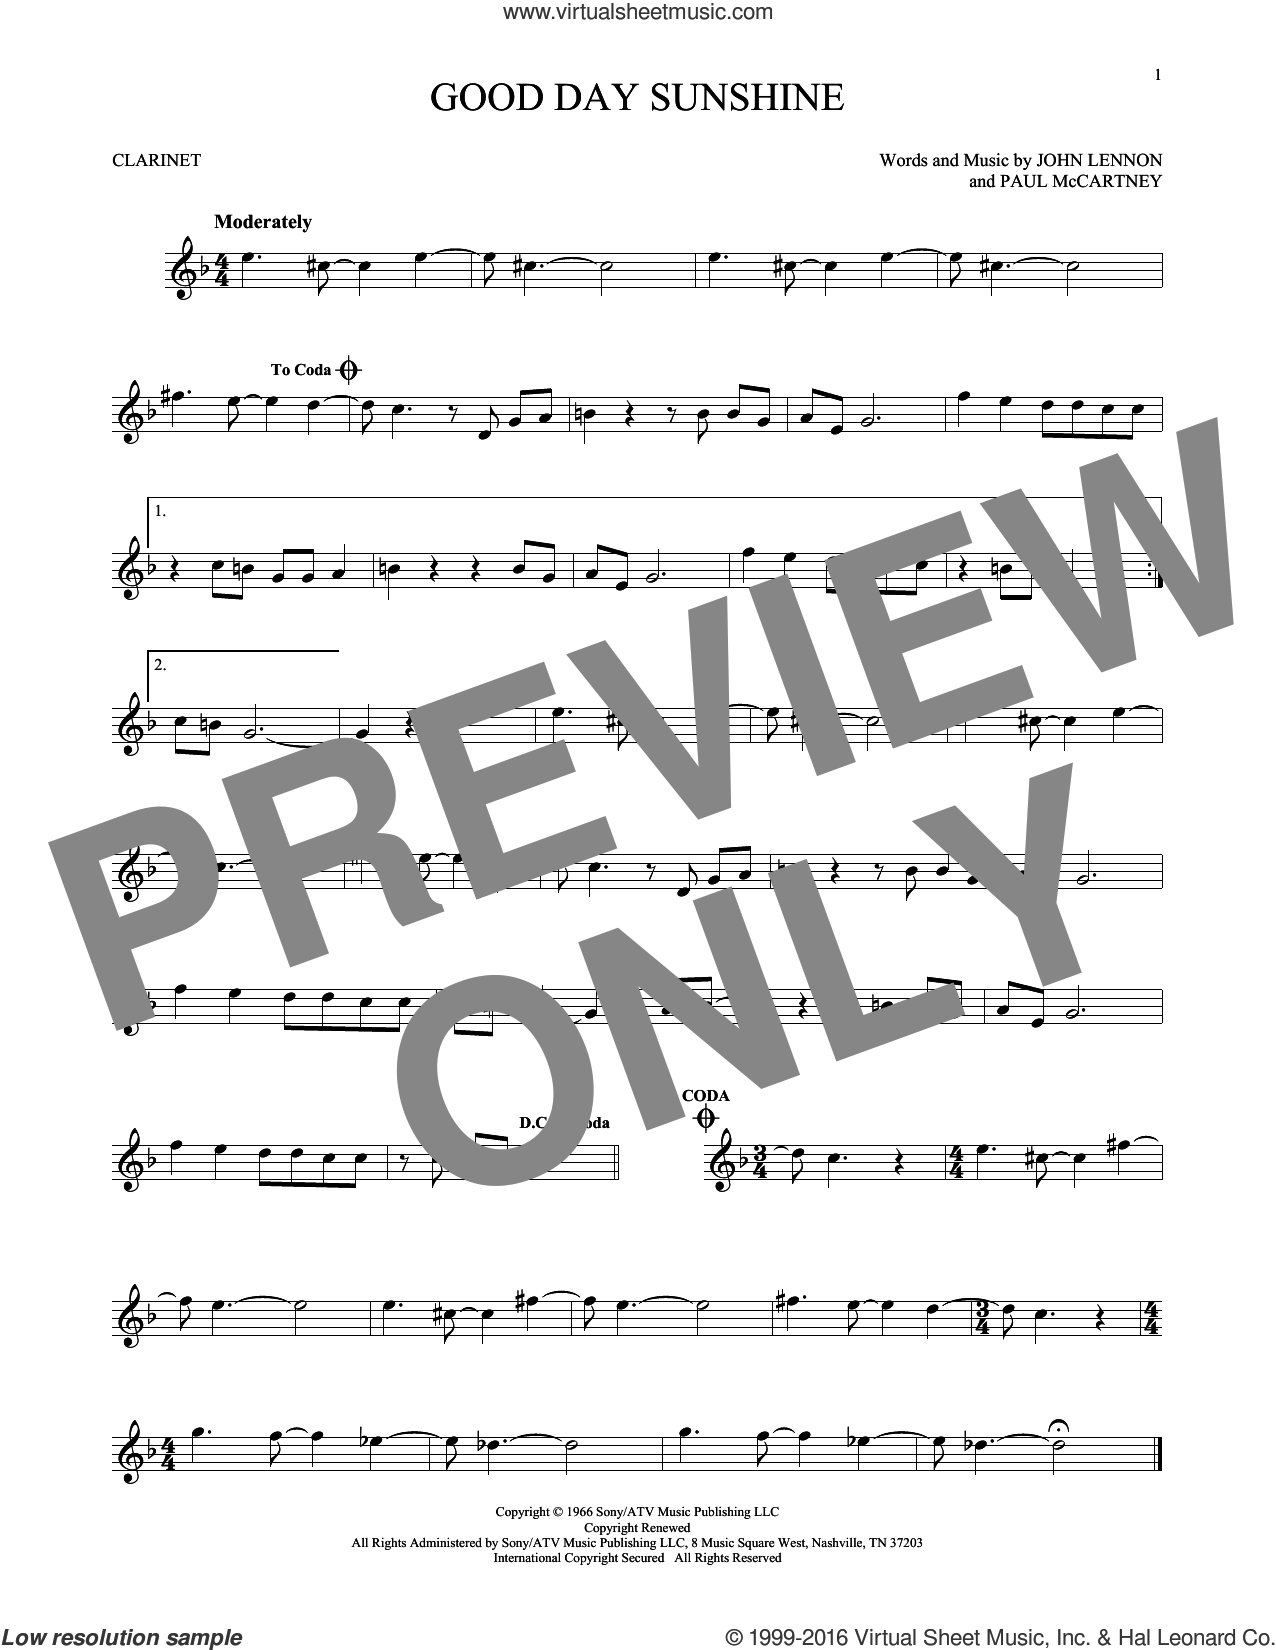 Good Day Sunshine sheet music for clarinet solo by The Beatles, John Lennon and Paul McCartney. Score Image Preview.